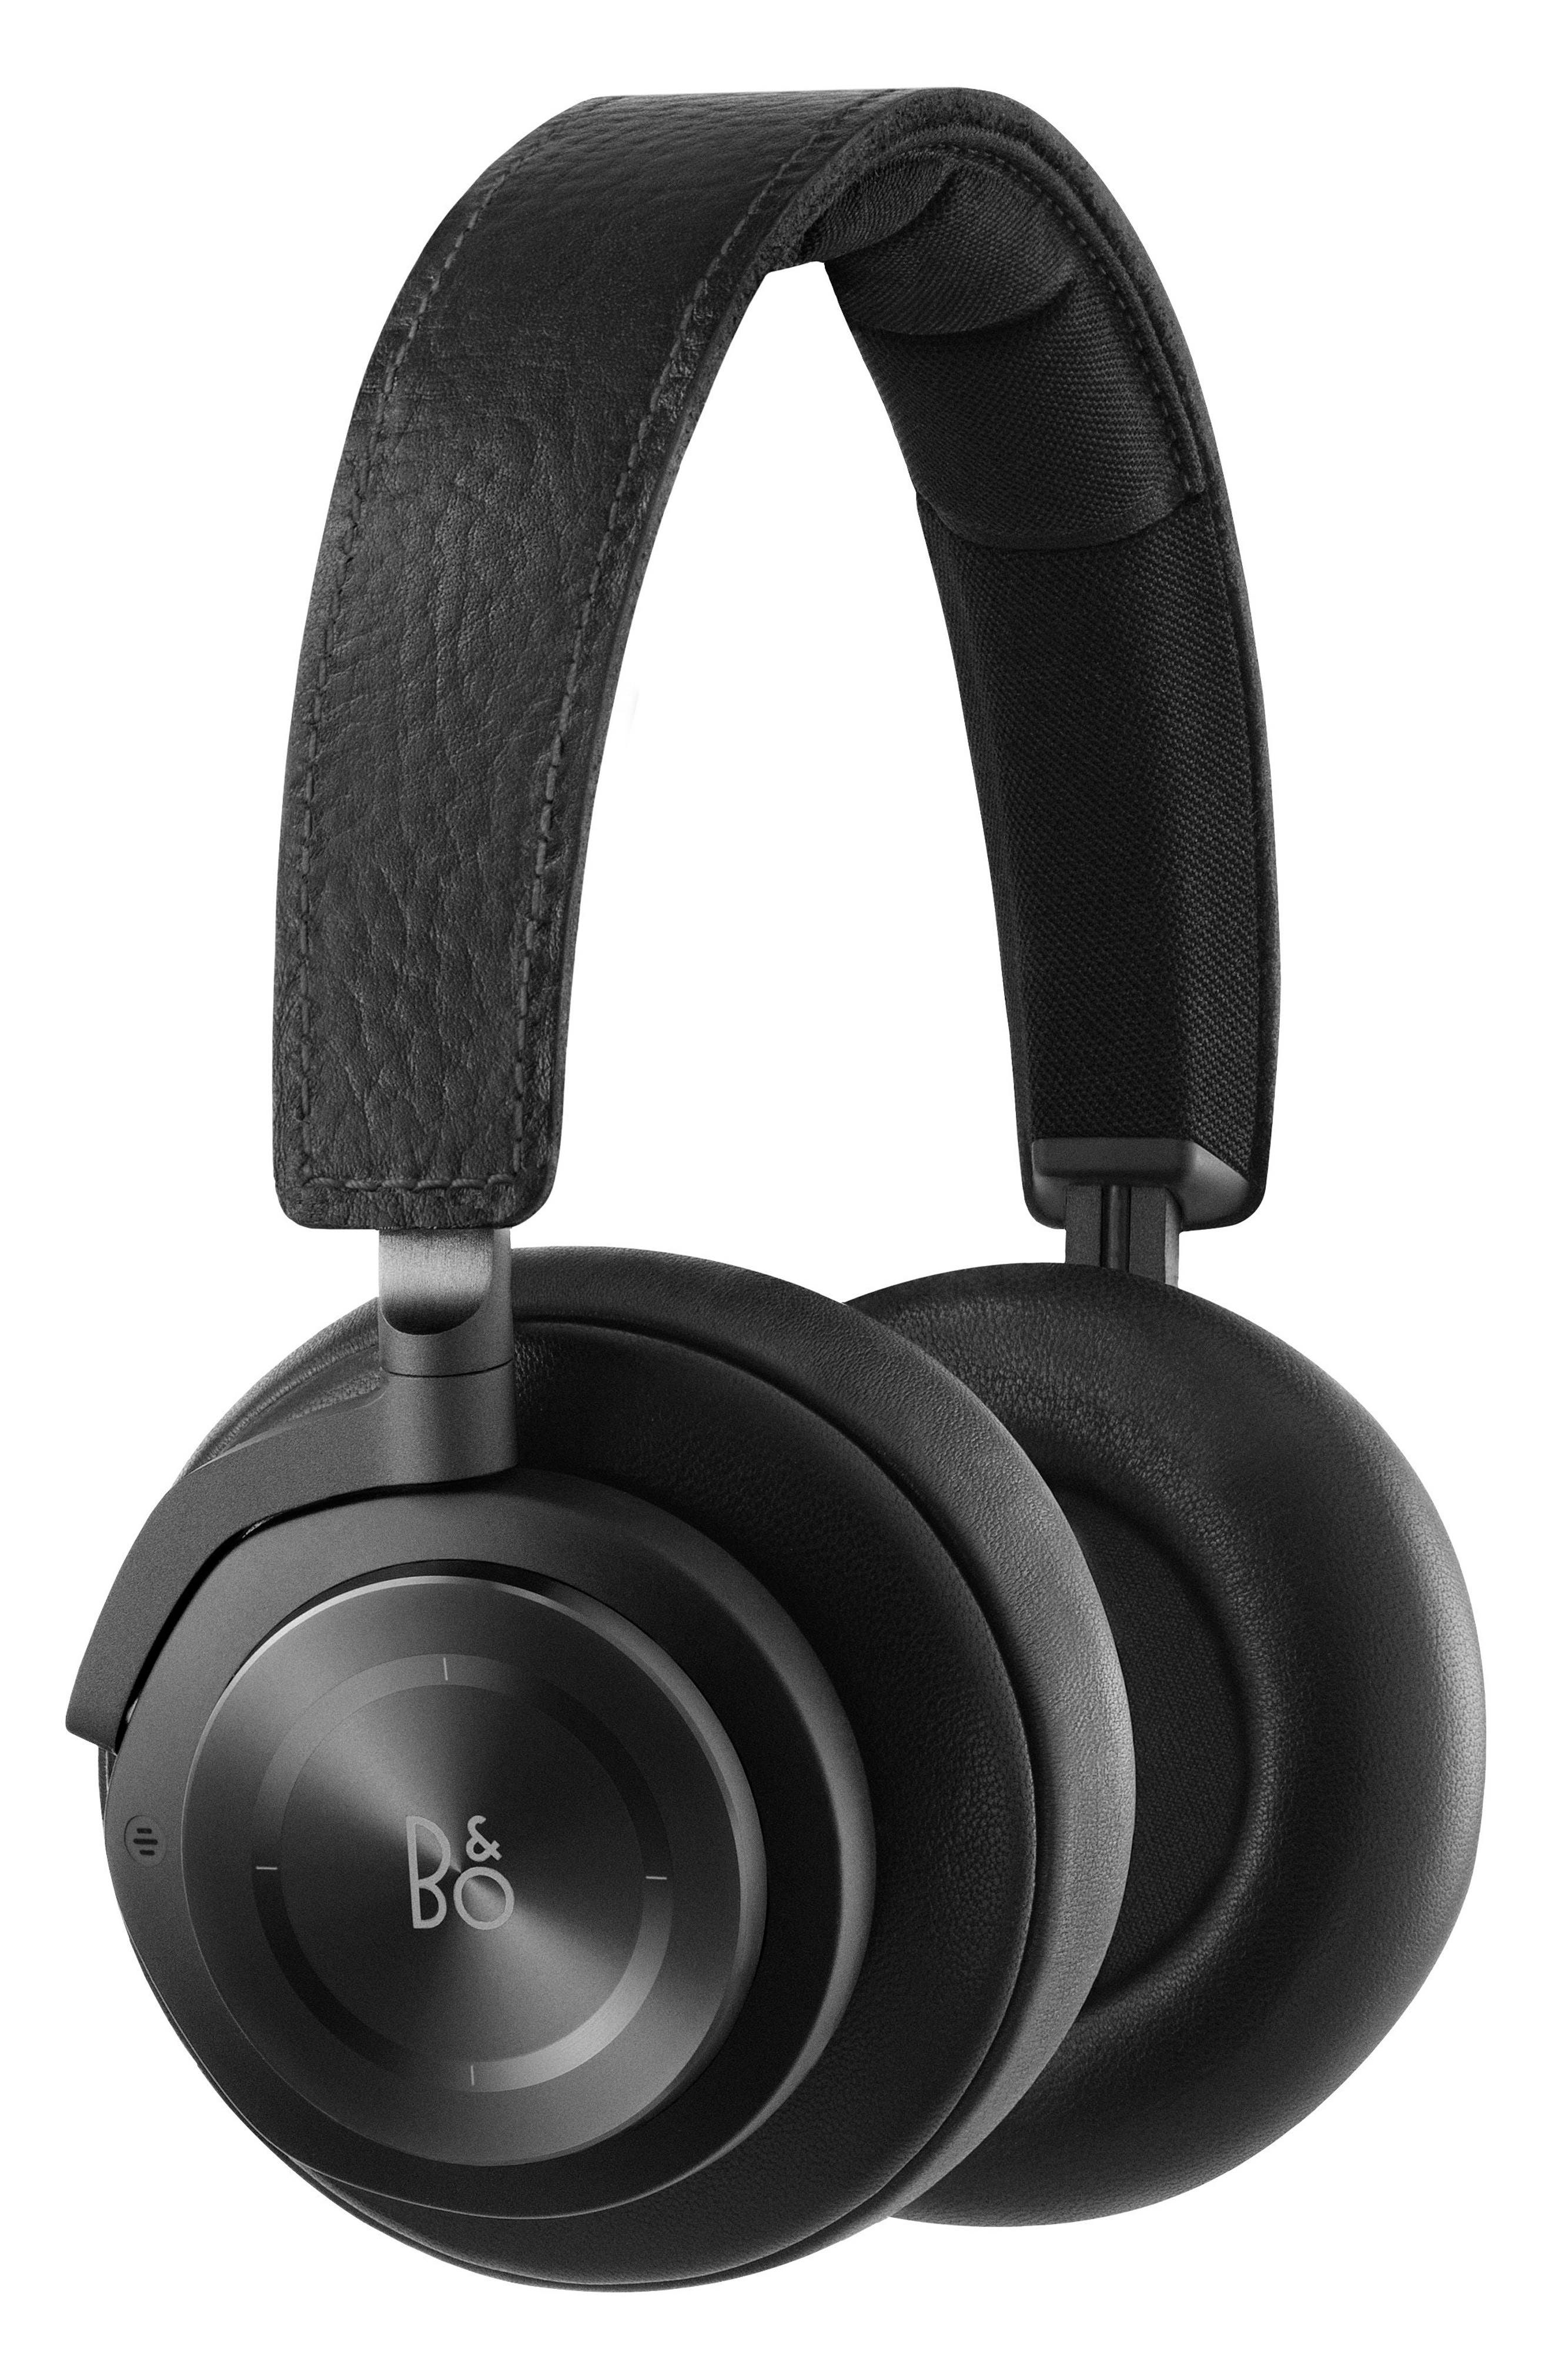 H9 Wireless Noise Canceling on-Ear Headphones,                             Main thumbnail 1, color,                             Black